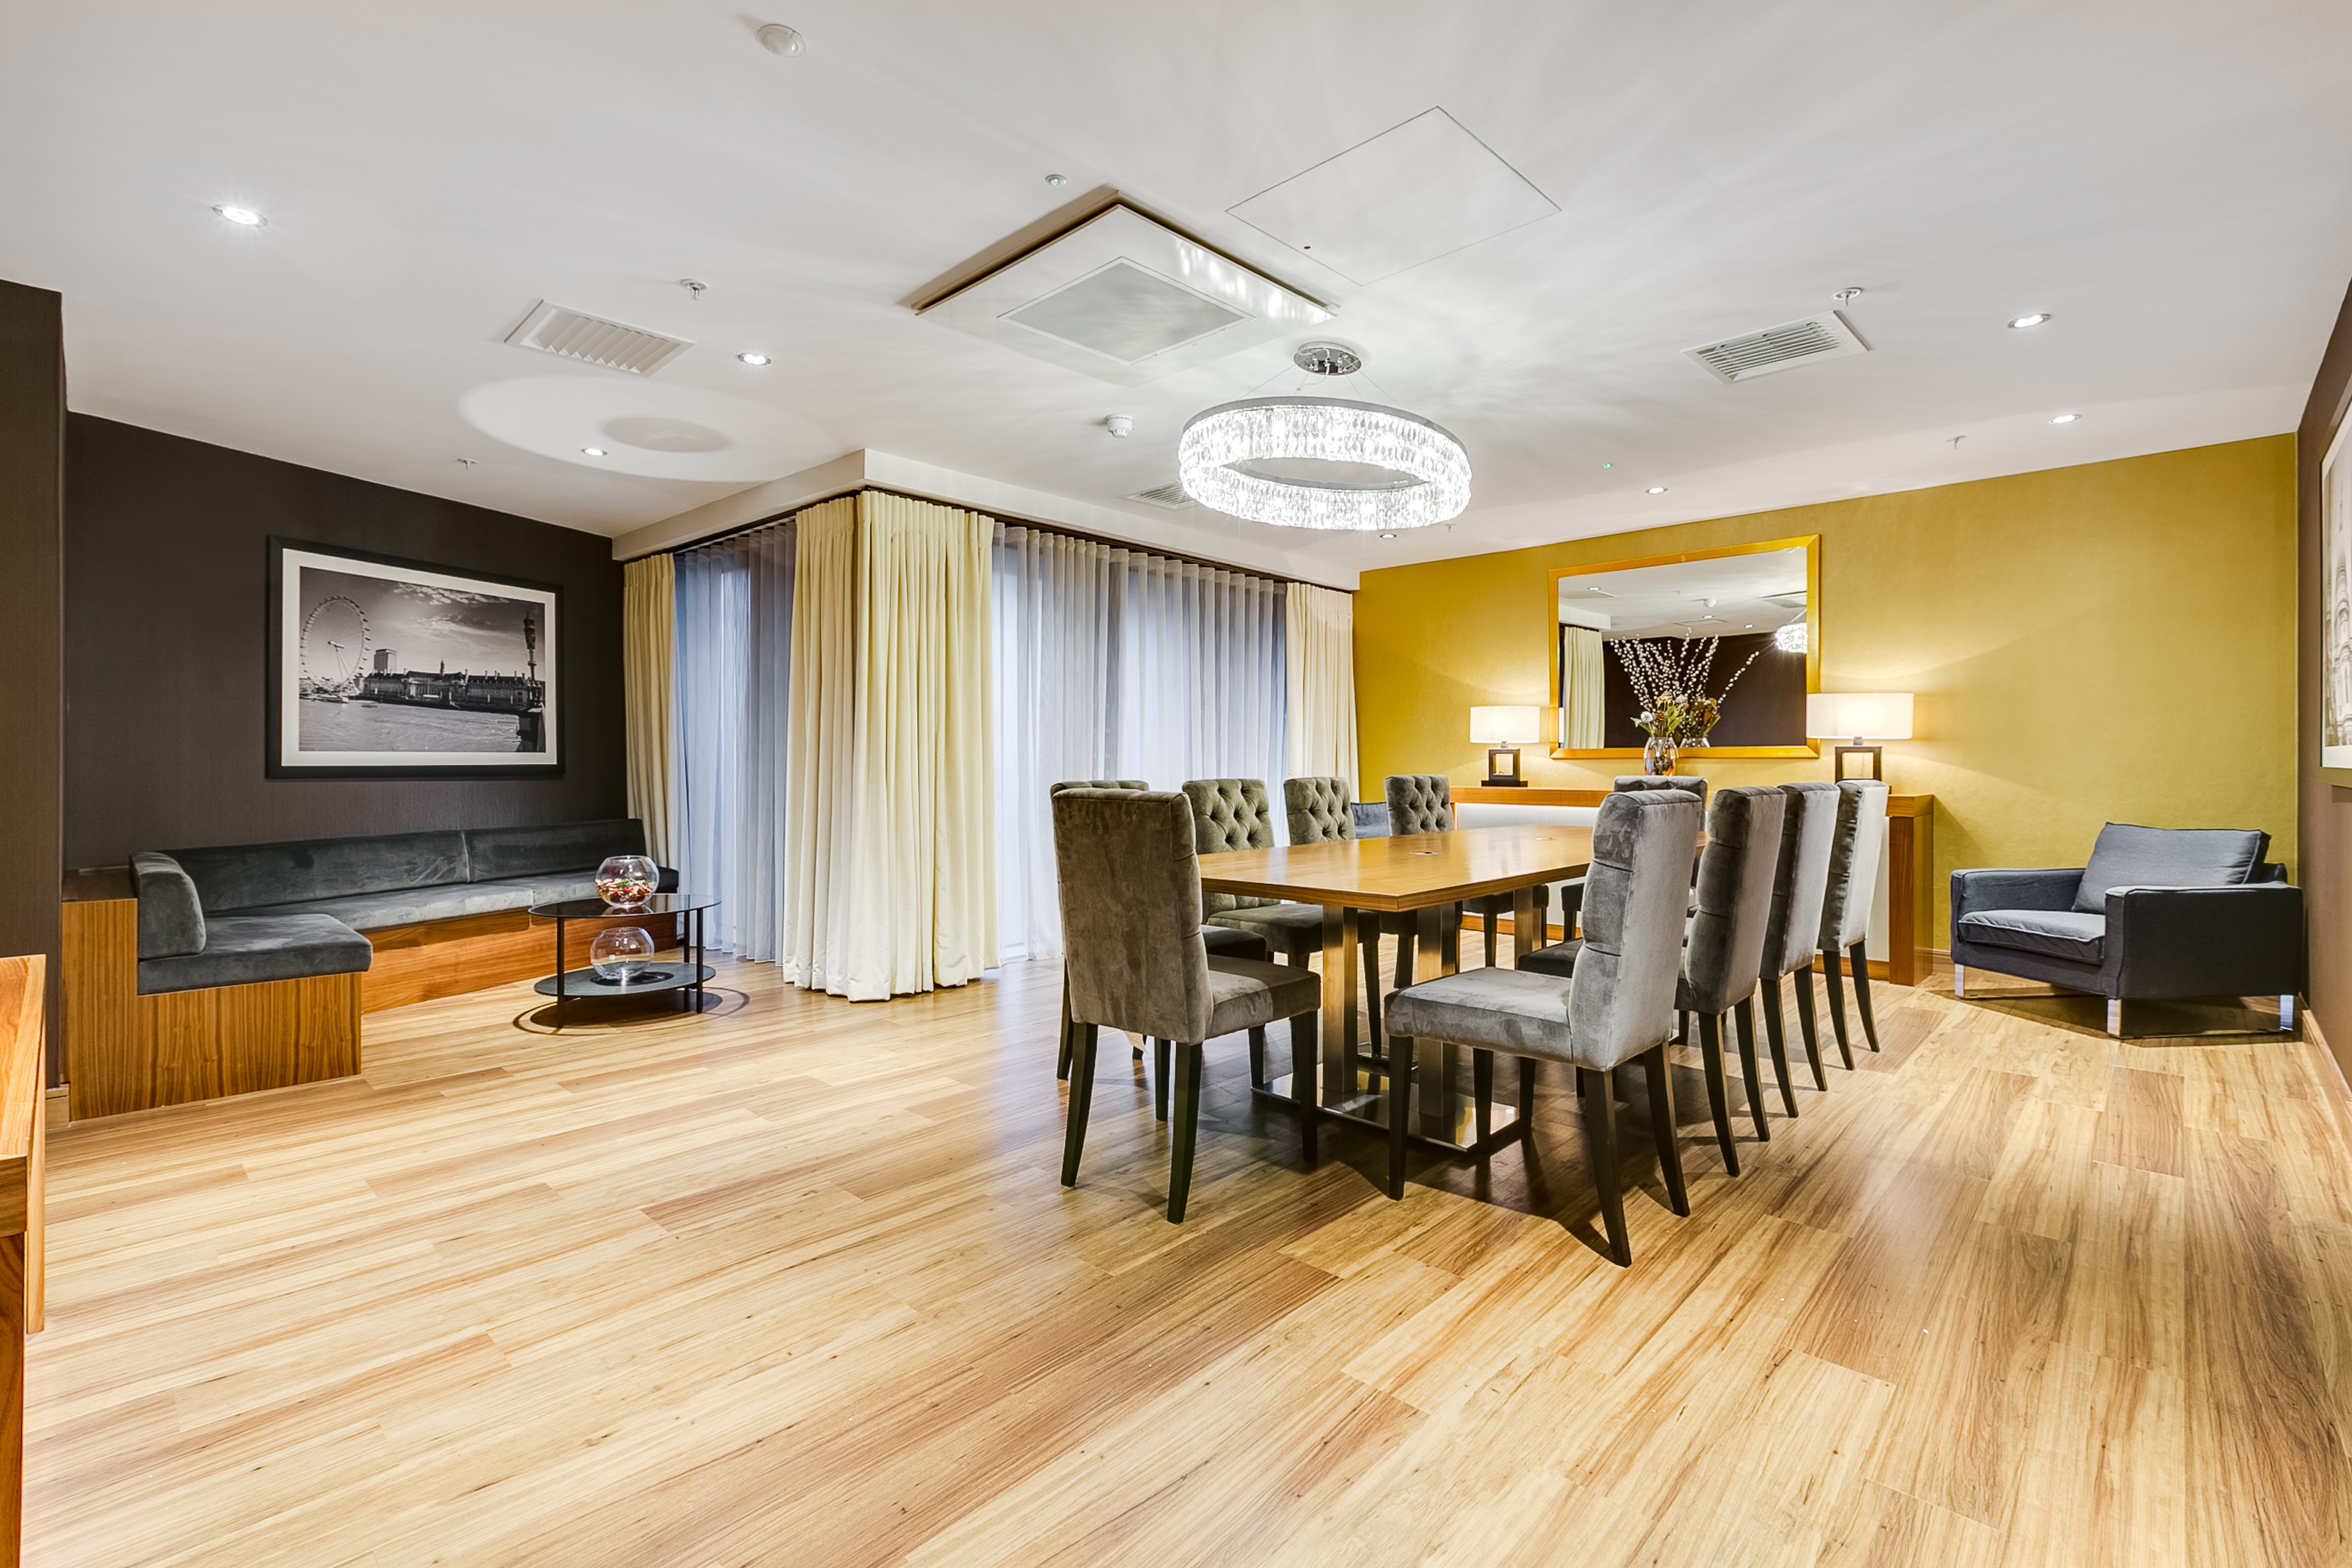 hardwood flooring company west hampstead of battersea luxury apartments london serviced apartments in ref 6731